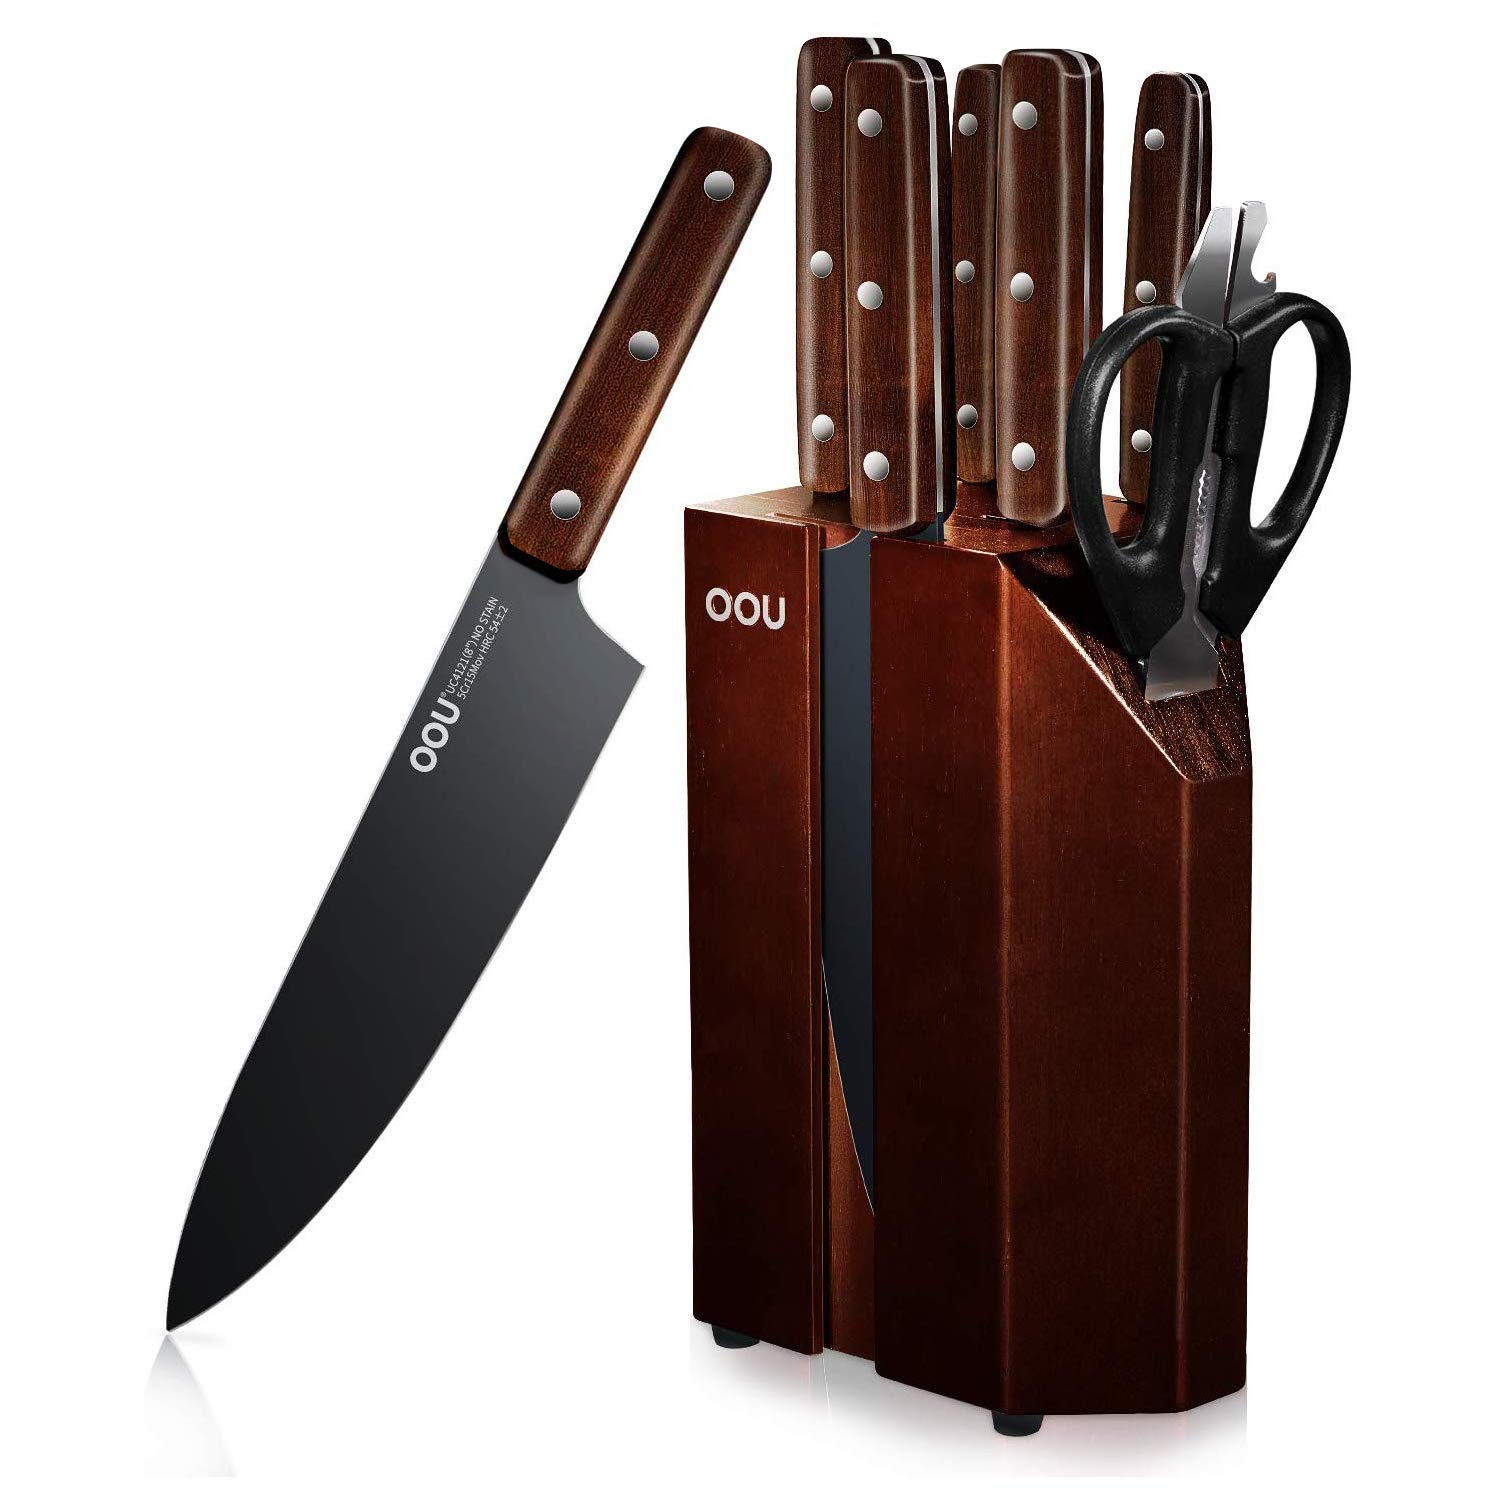 Kitchen Knife Set, OOU 8 Piece Chef Knife Set with Wooden Block, High Carbon Stainless Steel Knife Set, Cutlery Knives Set with Ebony Wood Handle, FDA Certified BO Oxidation for Anti-rusting by OOU!